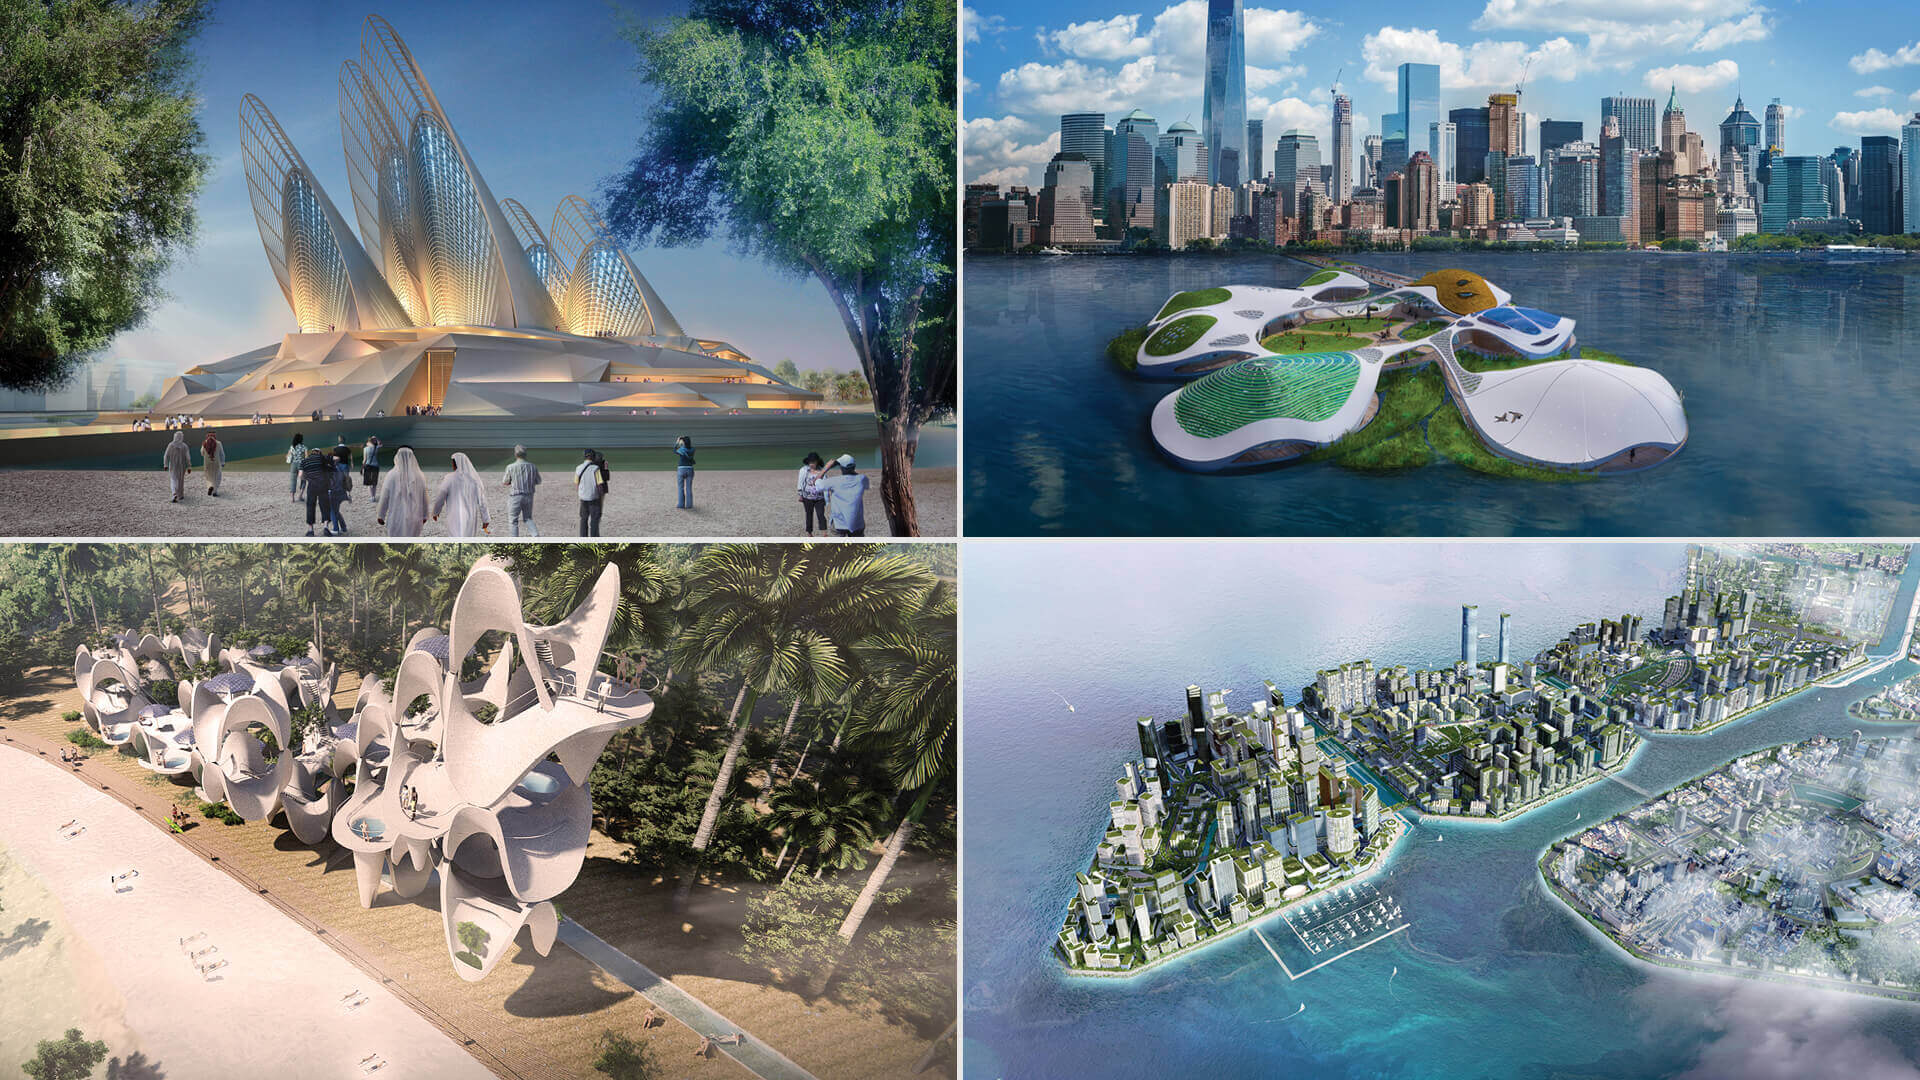 World Architecture Festival awards, WAFX 2021, go to 12 ambitious future projects